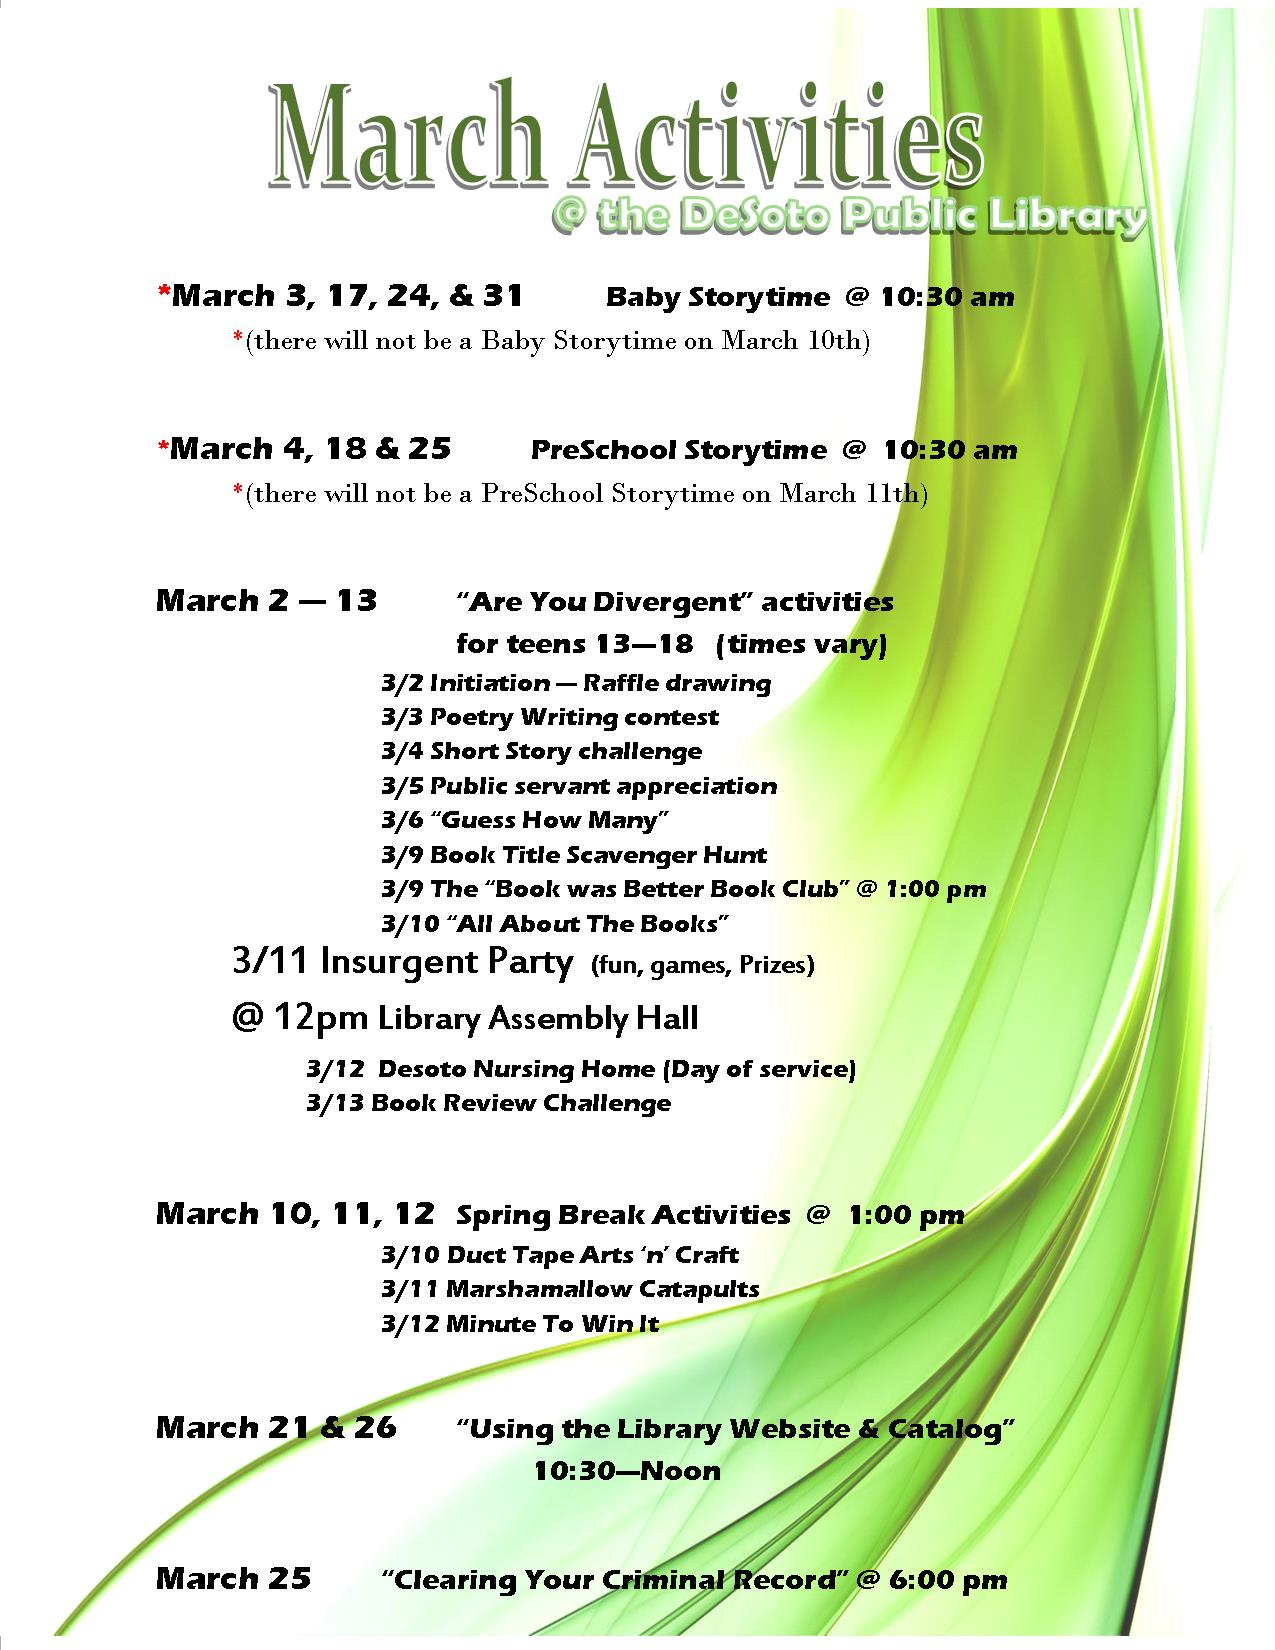 march activities 2015ABC.jpg